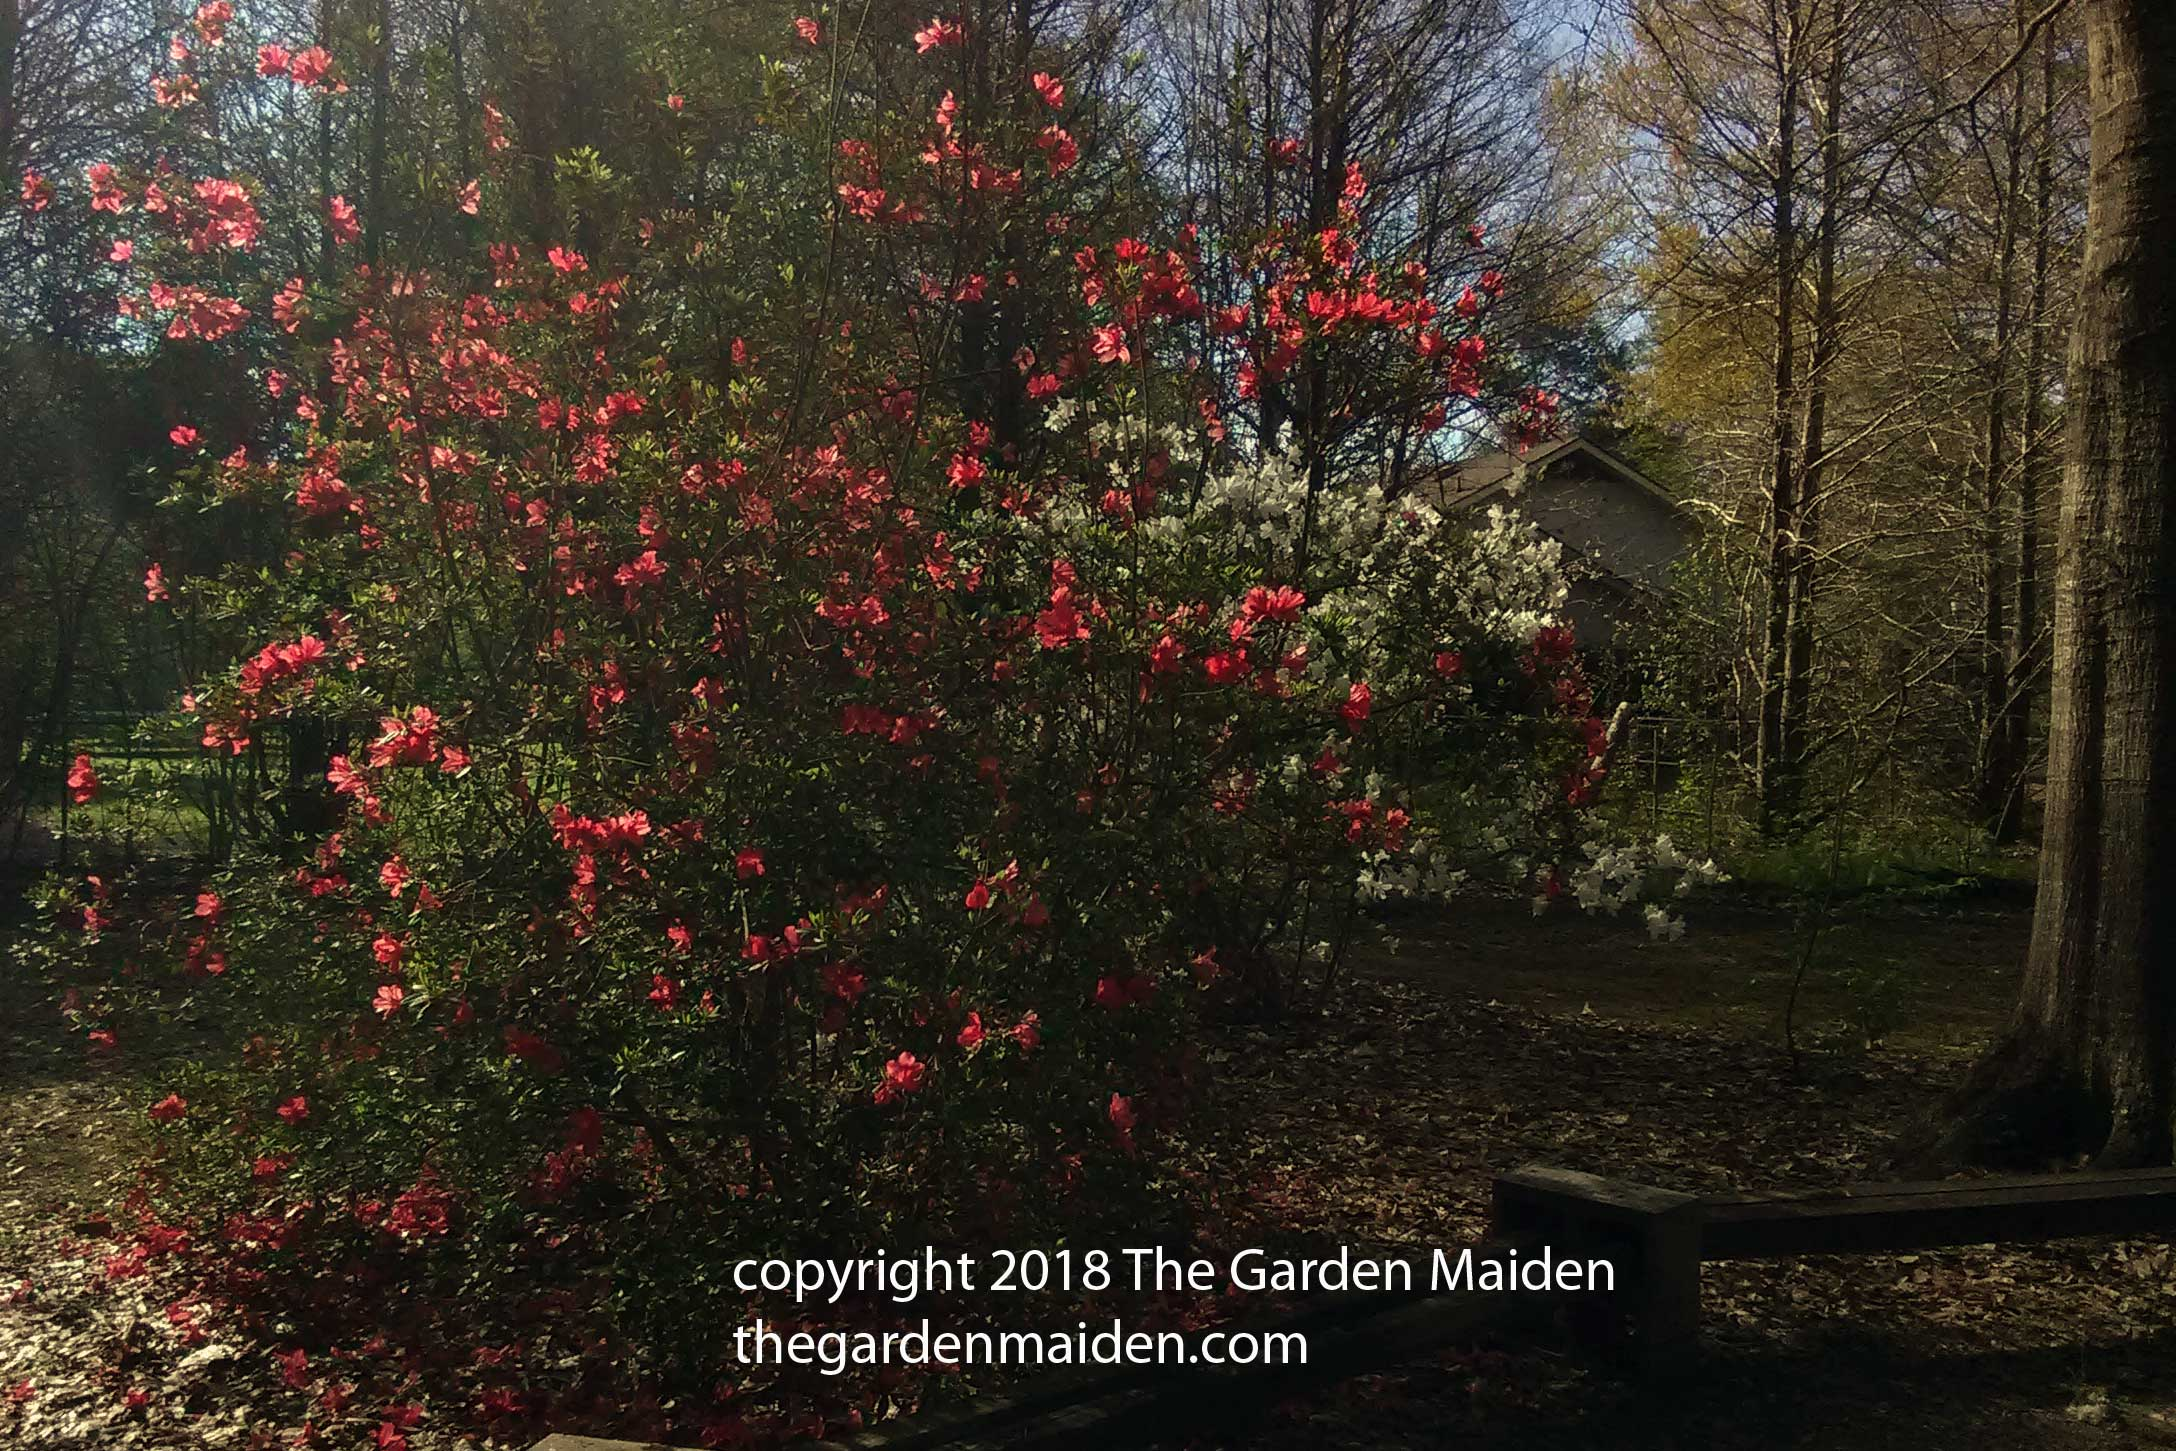 March Madness in The Garden of Goods and Evils | The Garden Maiden